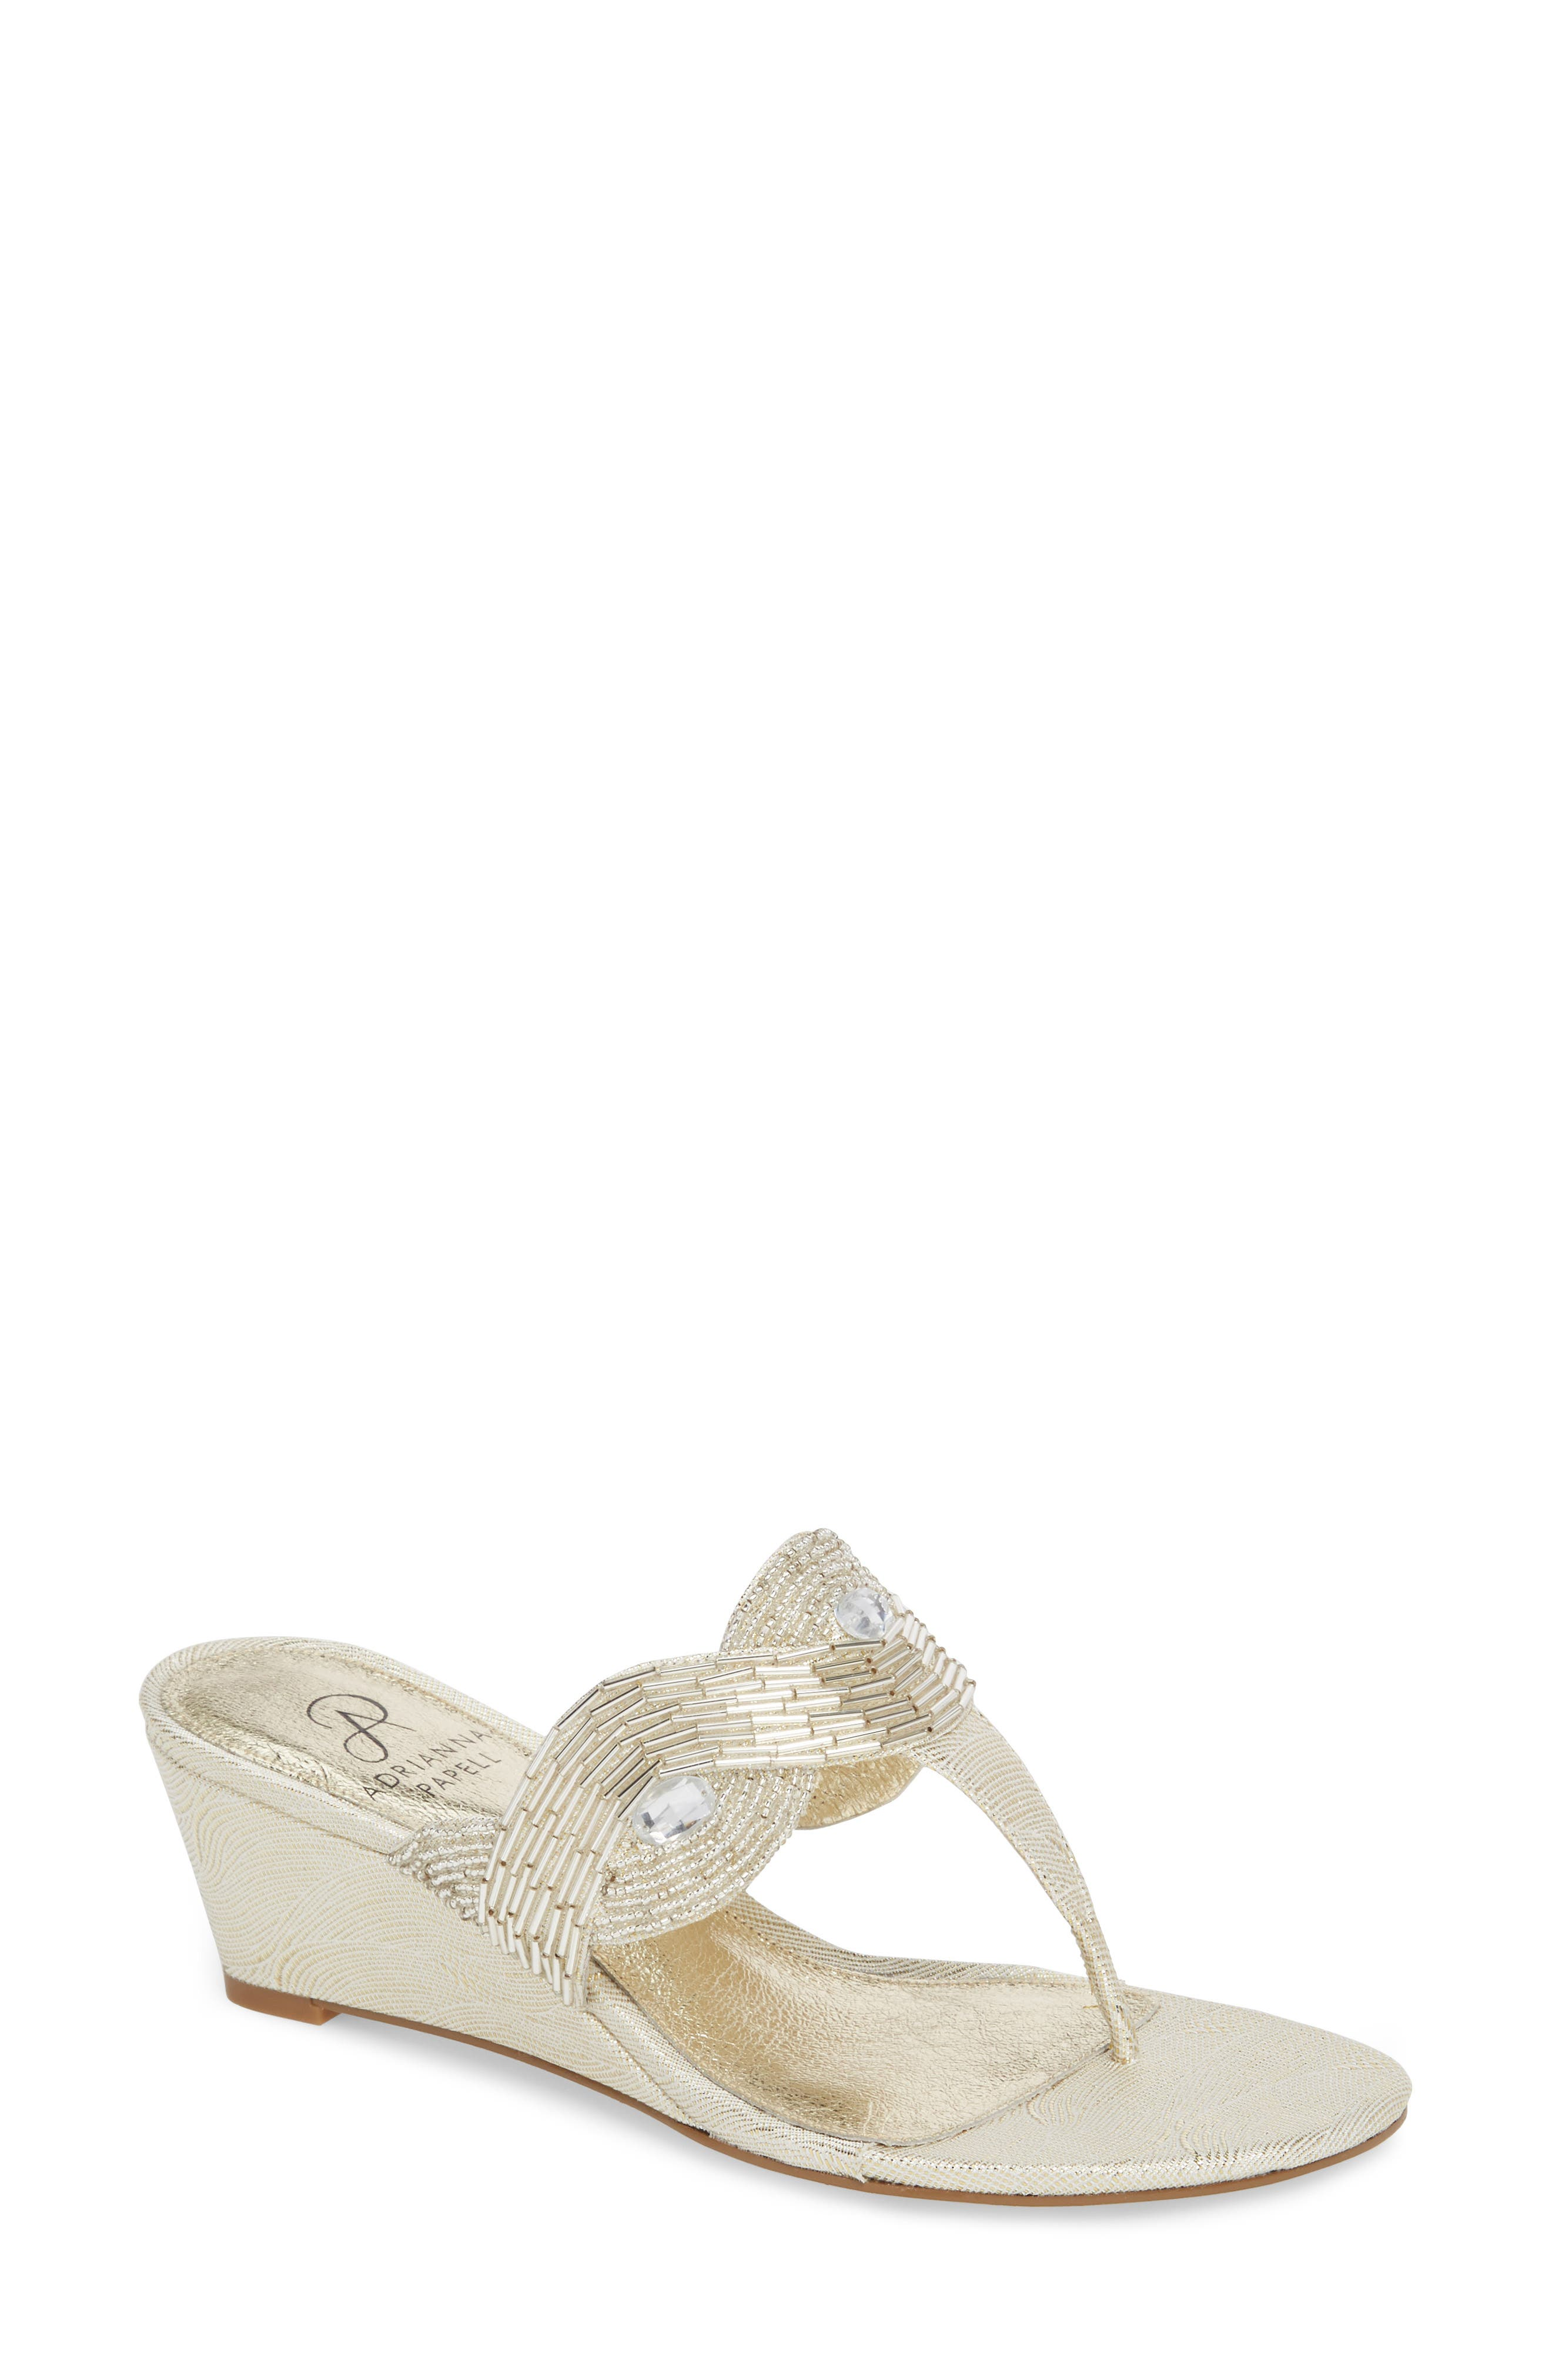 Coco Beaded Wedge Sandal,                             Main thumbnail 1, color,                             Pearl Fabric